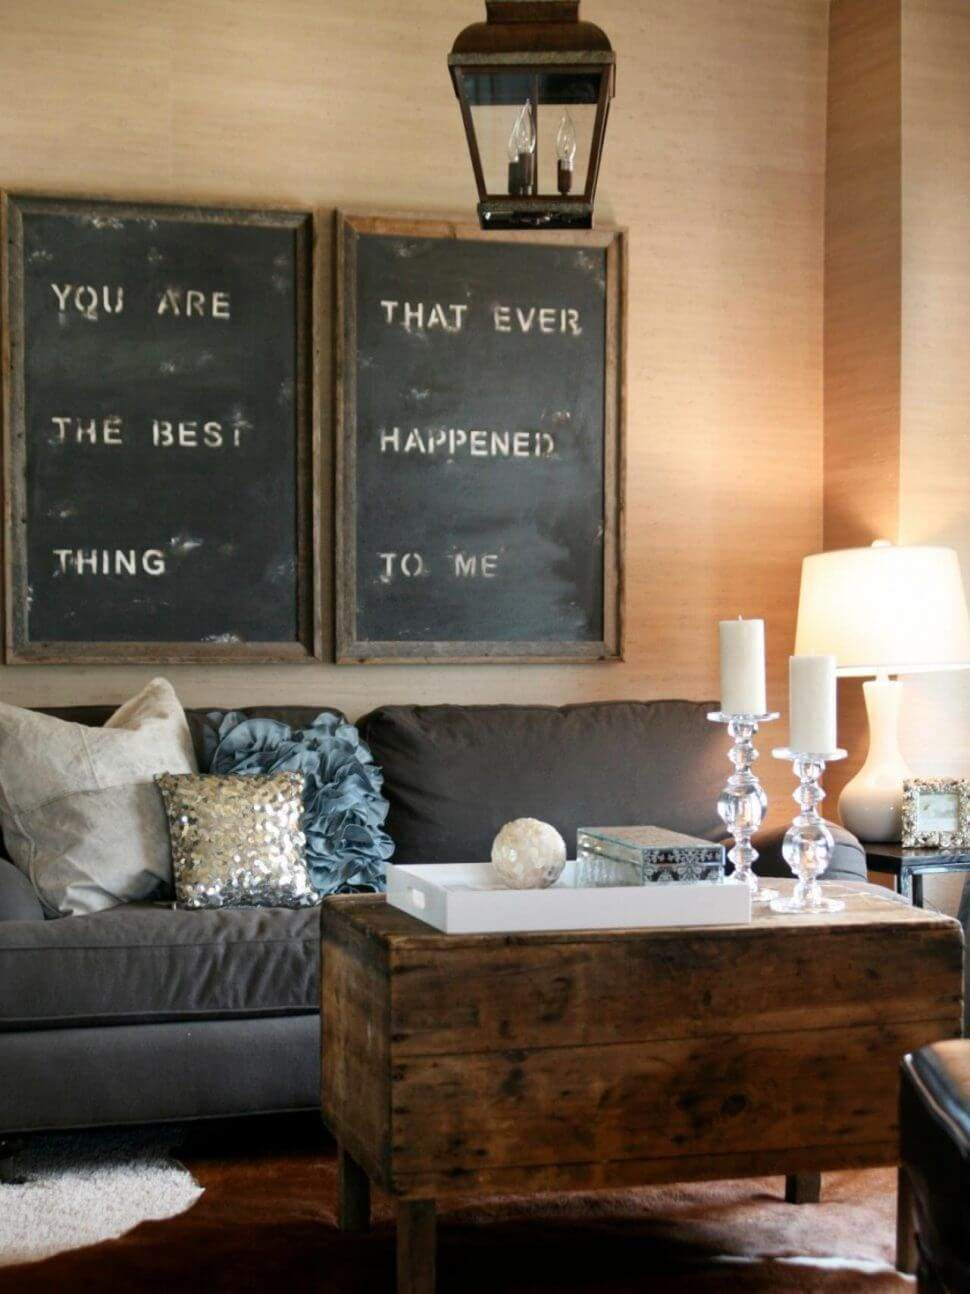 Get creative, why not stencil a message that has meaning to you on an old chalkboard? In this case the decorator used large rustic frames to bring your attention to the message on the signs. The chalkboard background gives this sign a rustic feel while it maintains an elegant quality to the room decor.